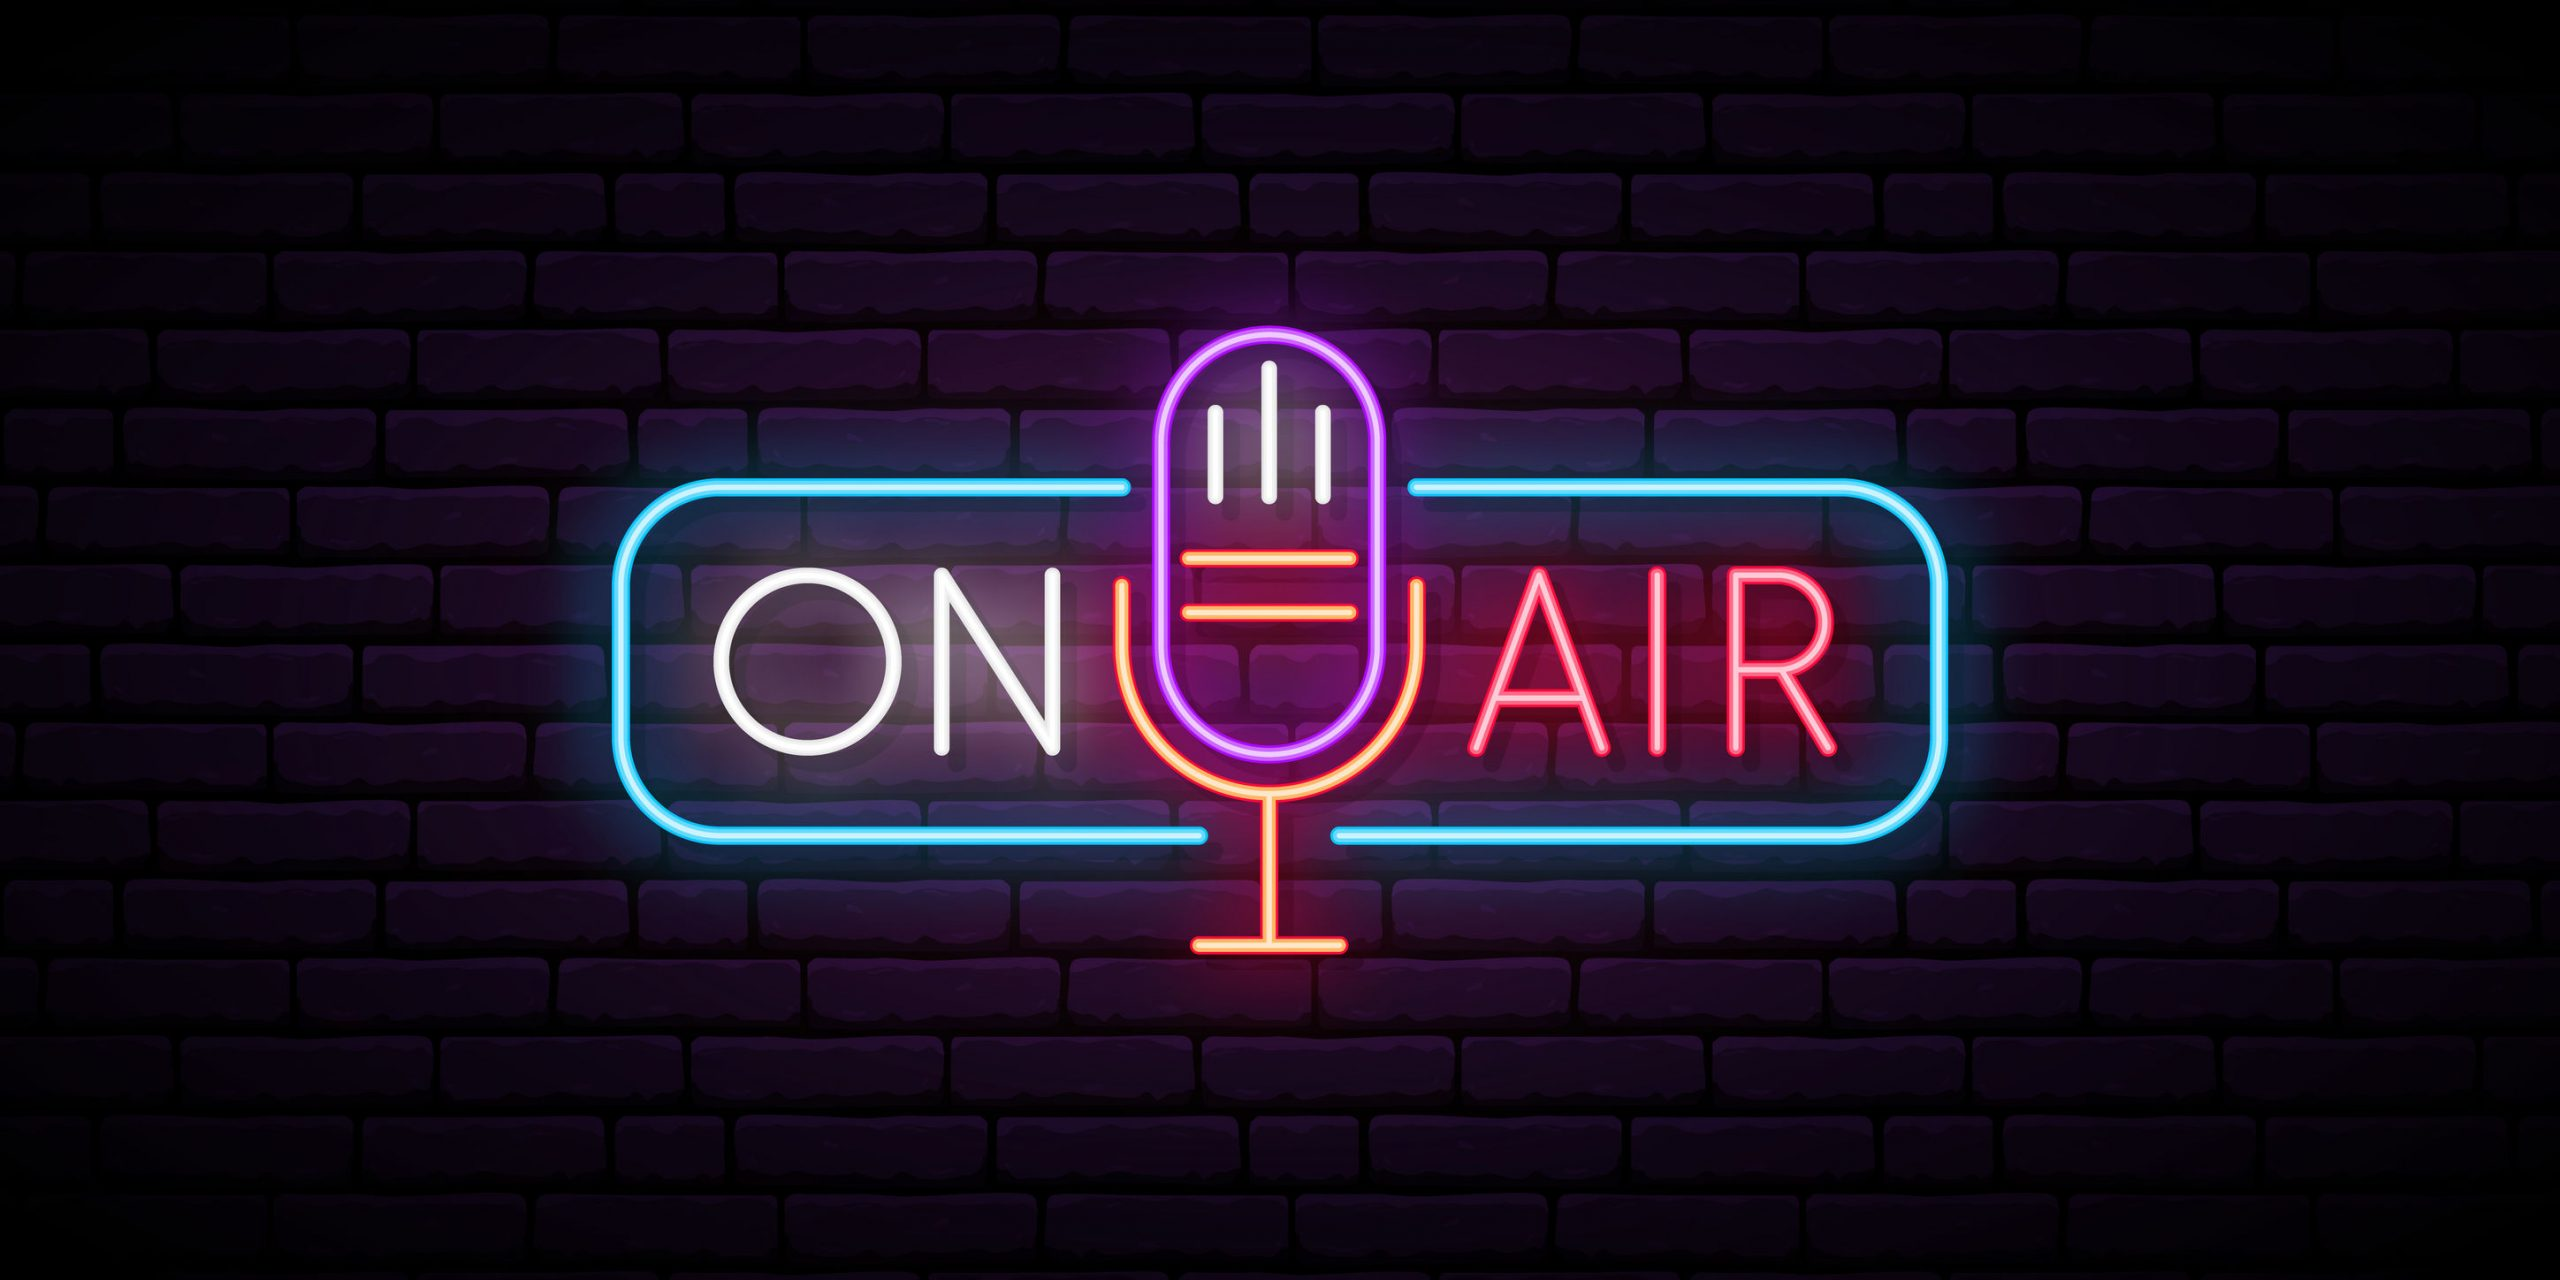 On air neon sign. Retro microphone in frame with inscription On Air. Music or radio emblem. Glowing signboard for radio station. Vector illustration.